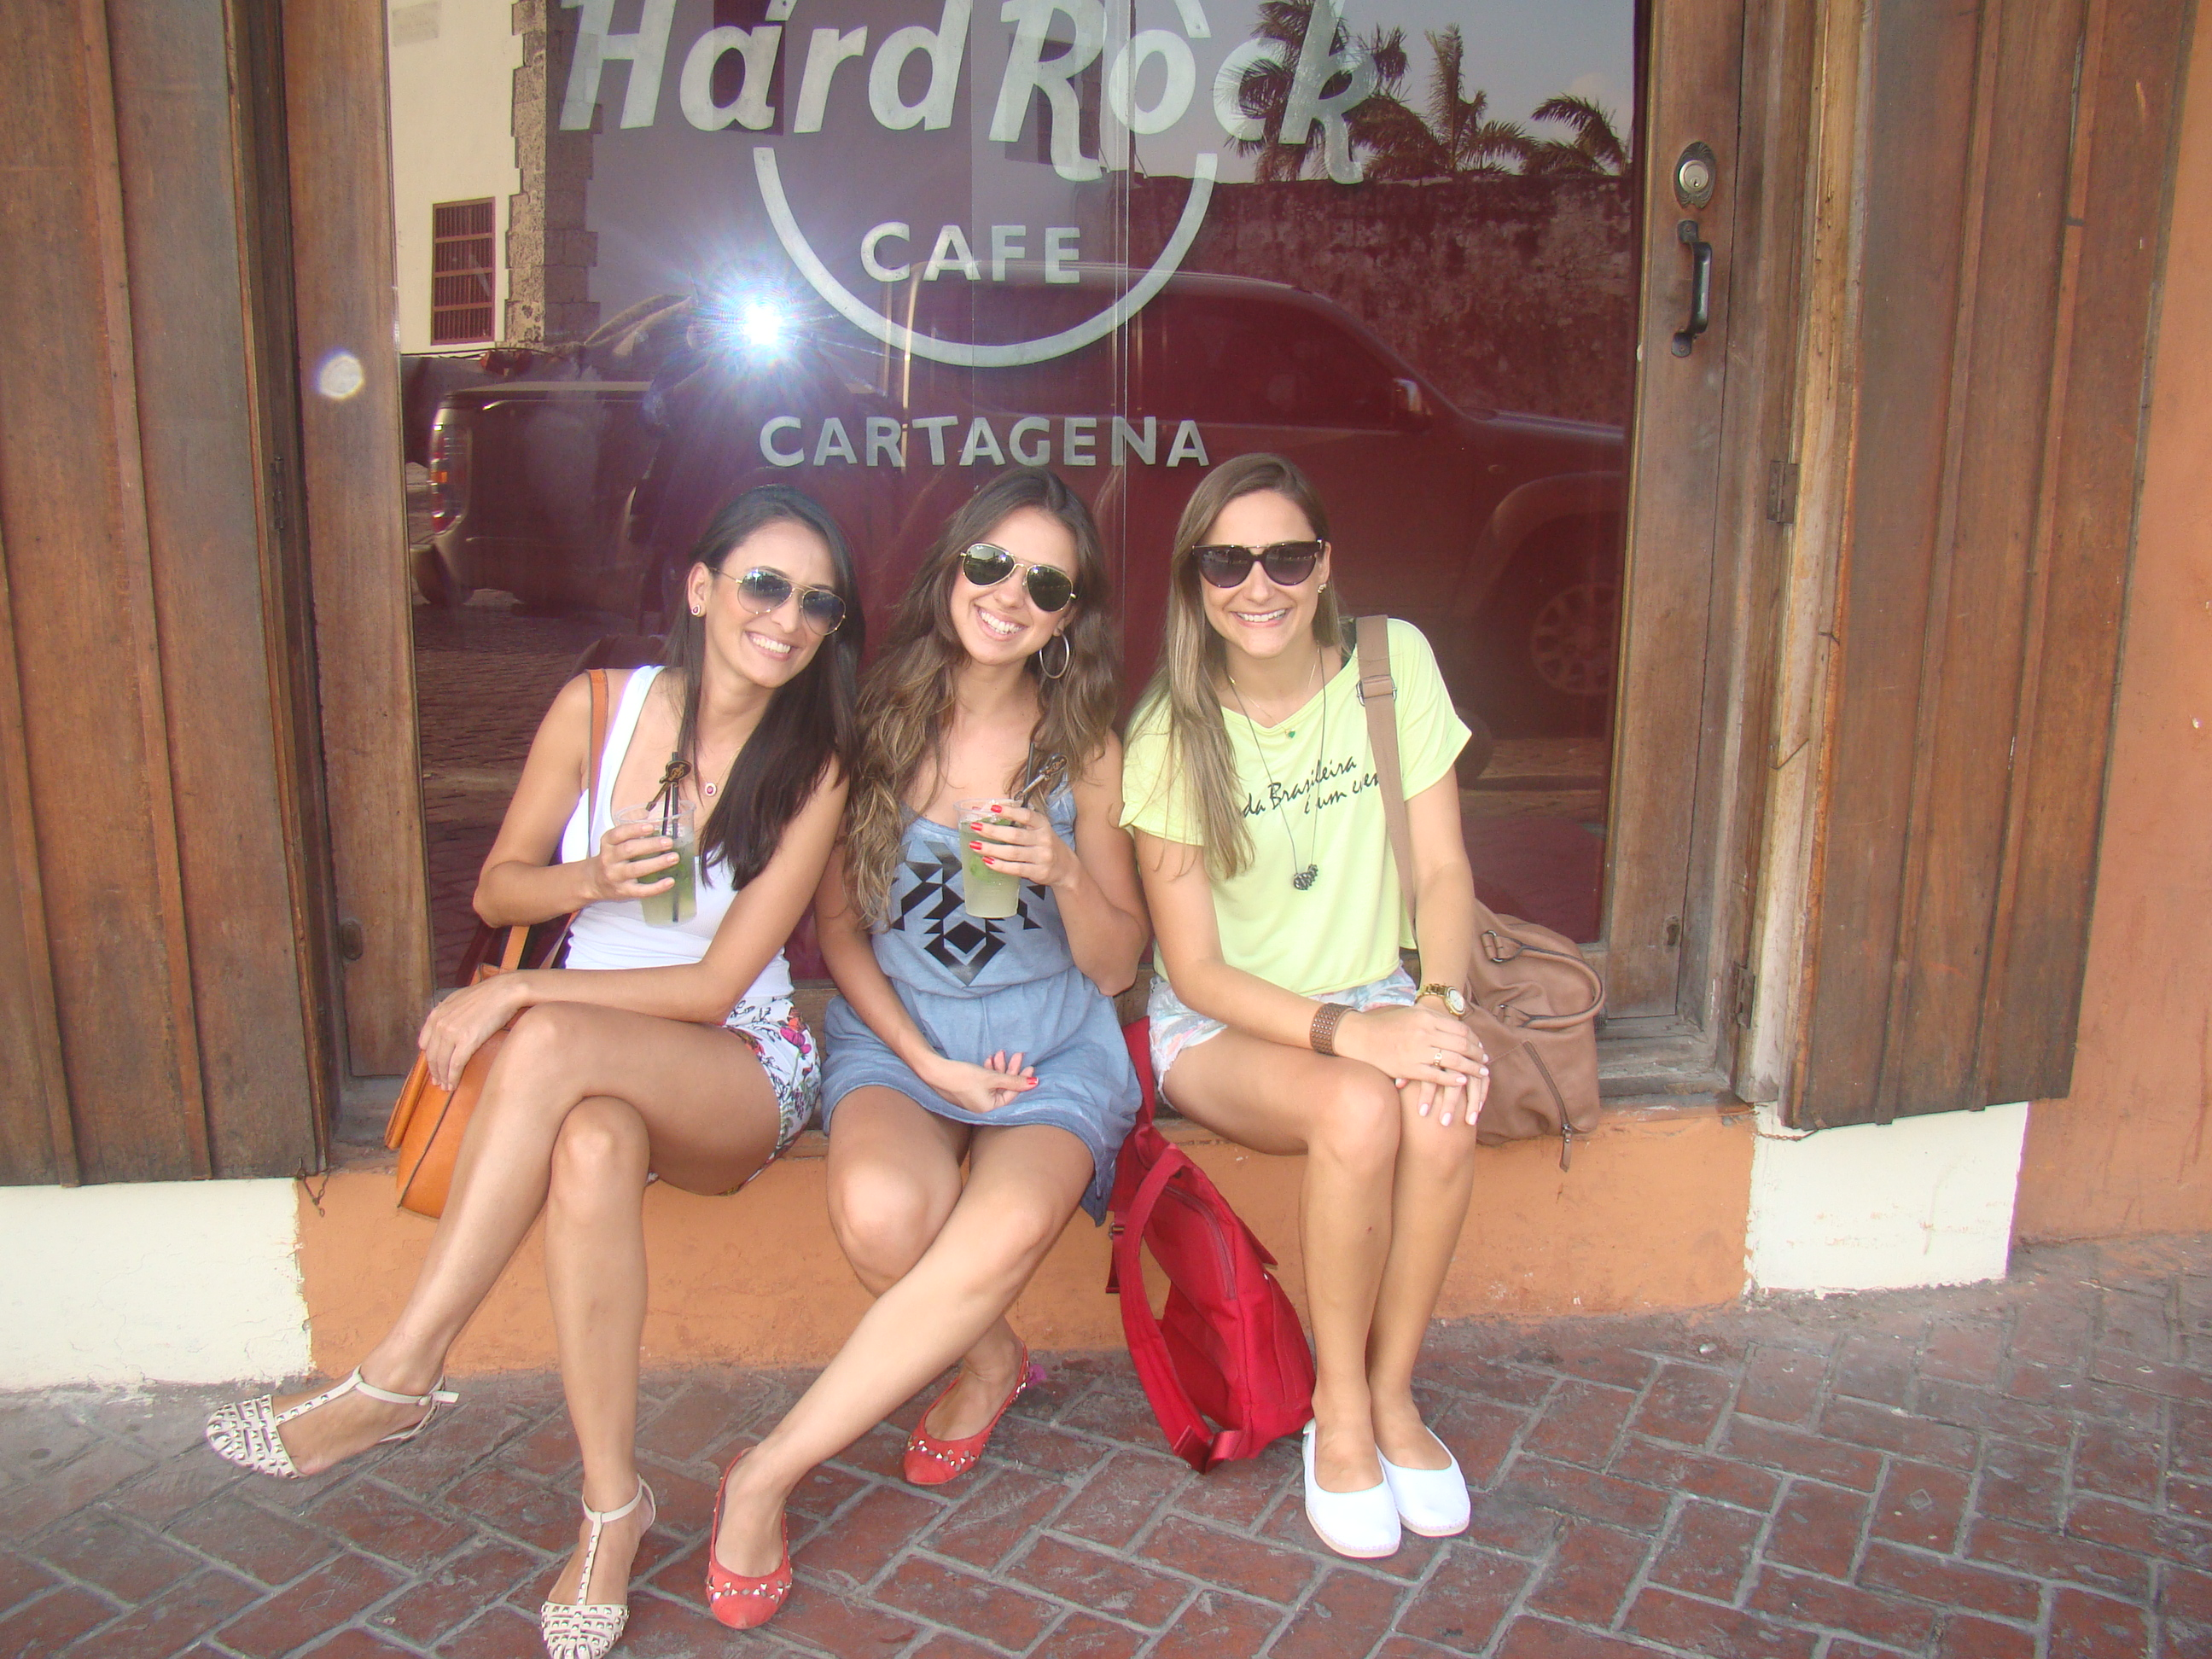 Cartagena De Indias Hard Rock Cafe